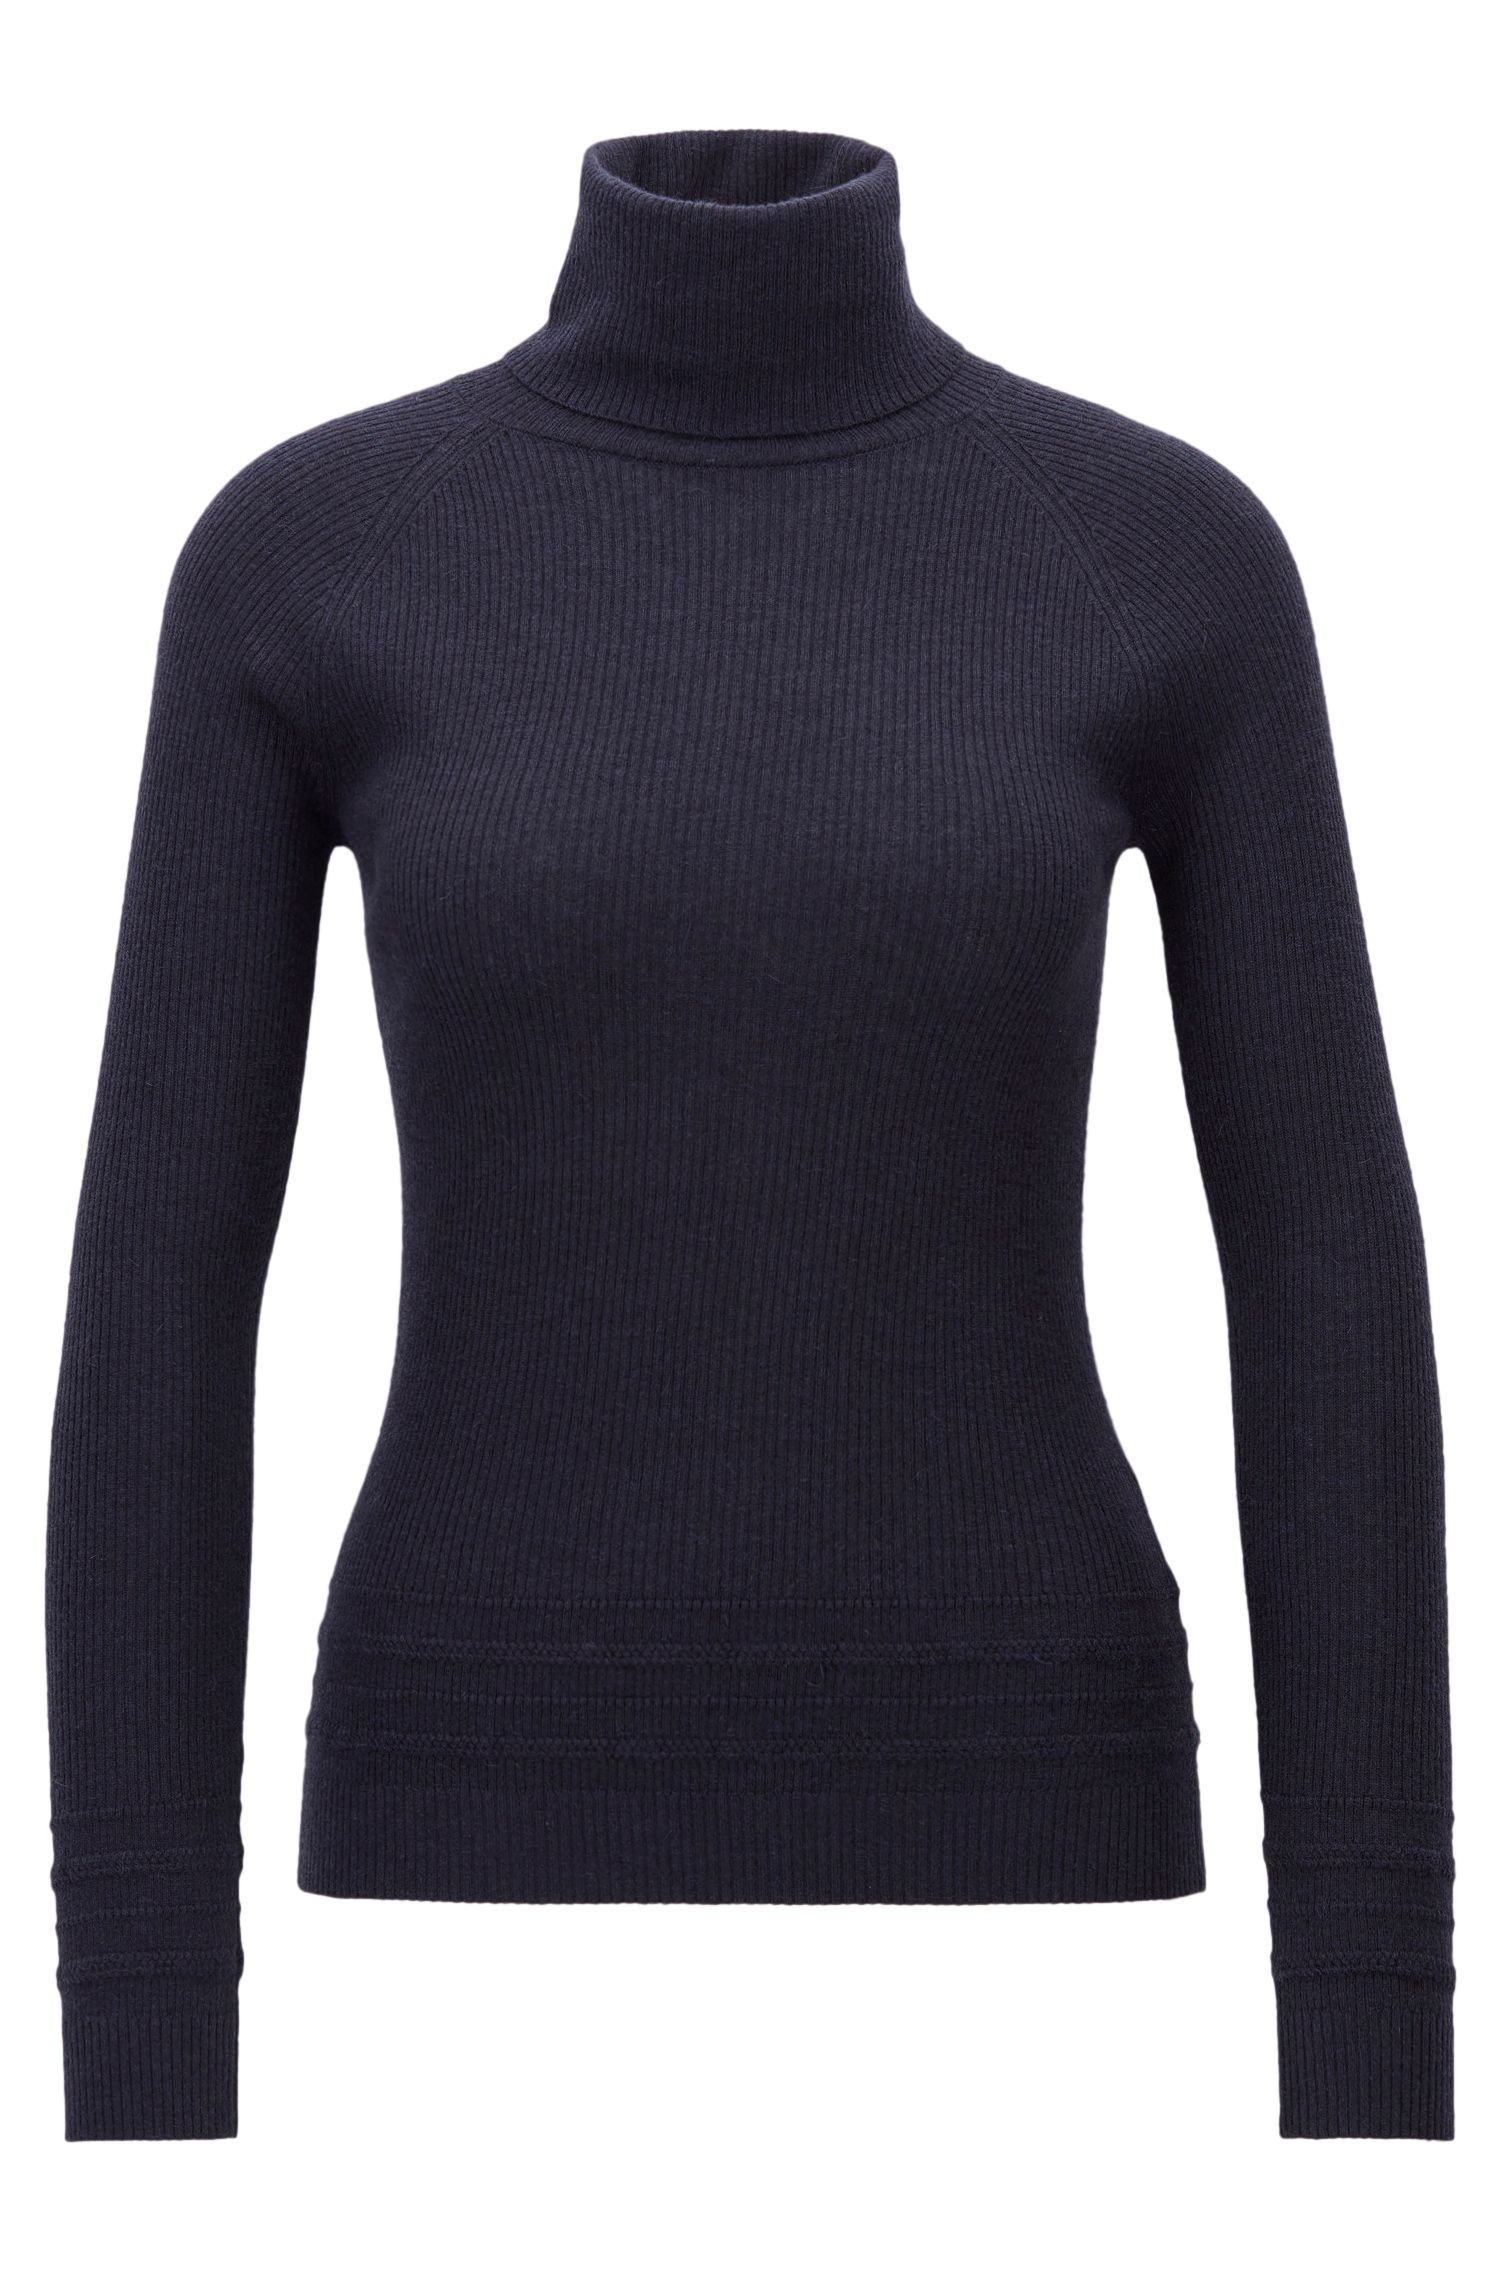 Roll-neck jumper in ribbed knit